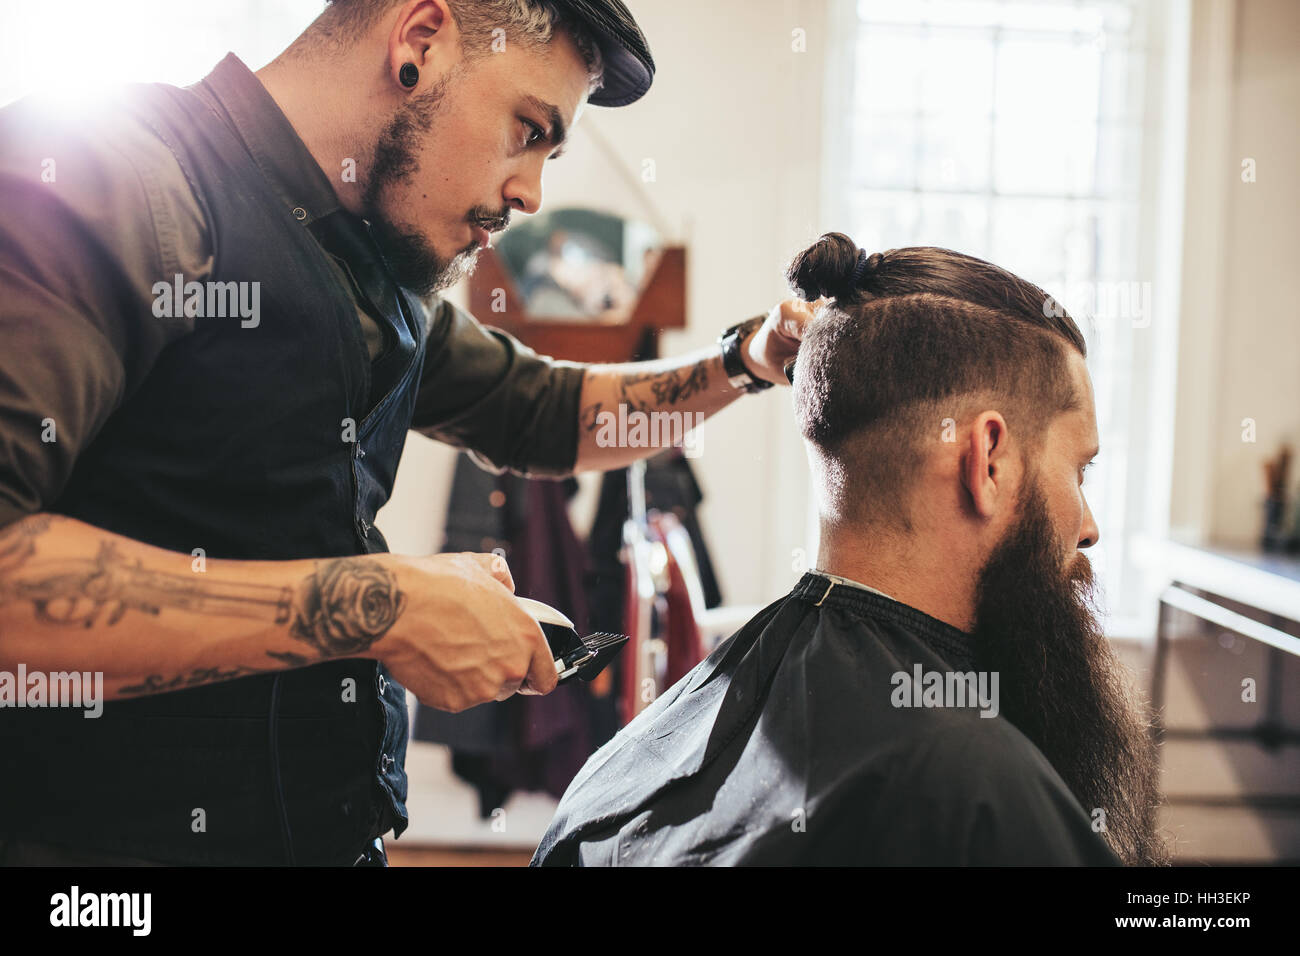 Stylish hairdresser cutting hair of client at barber shop. Beard man getting haircut at salon. - Stock Image